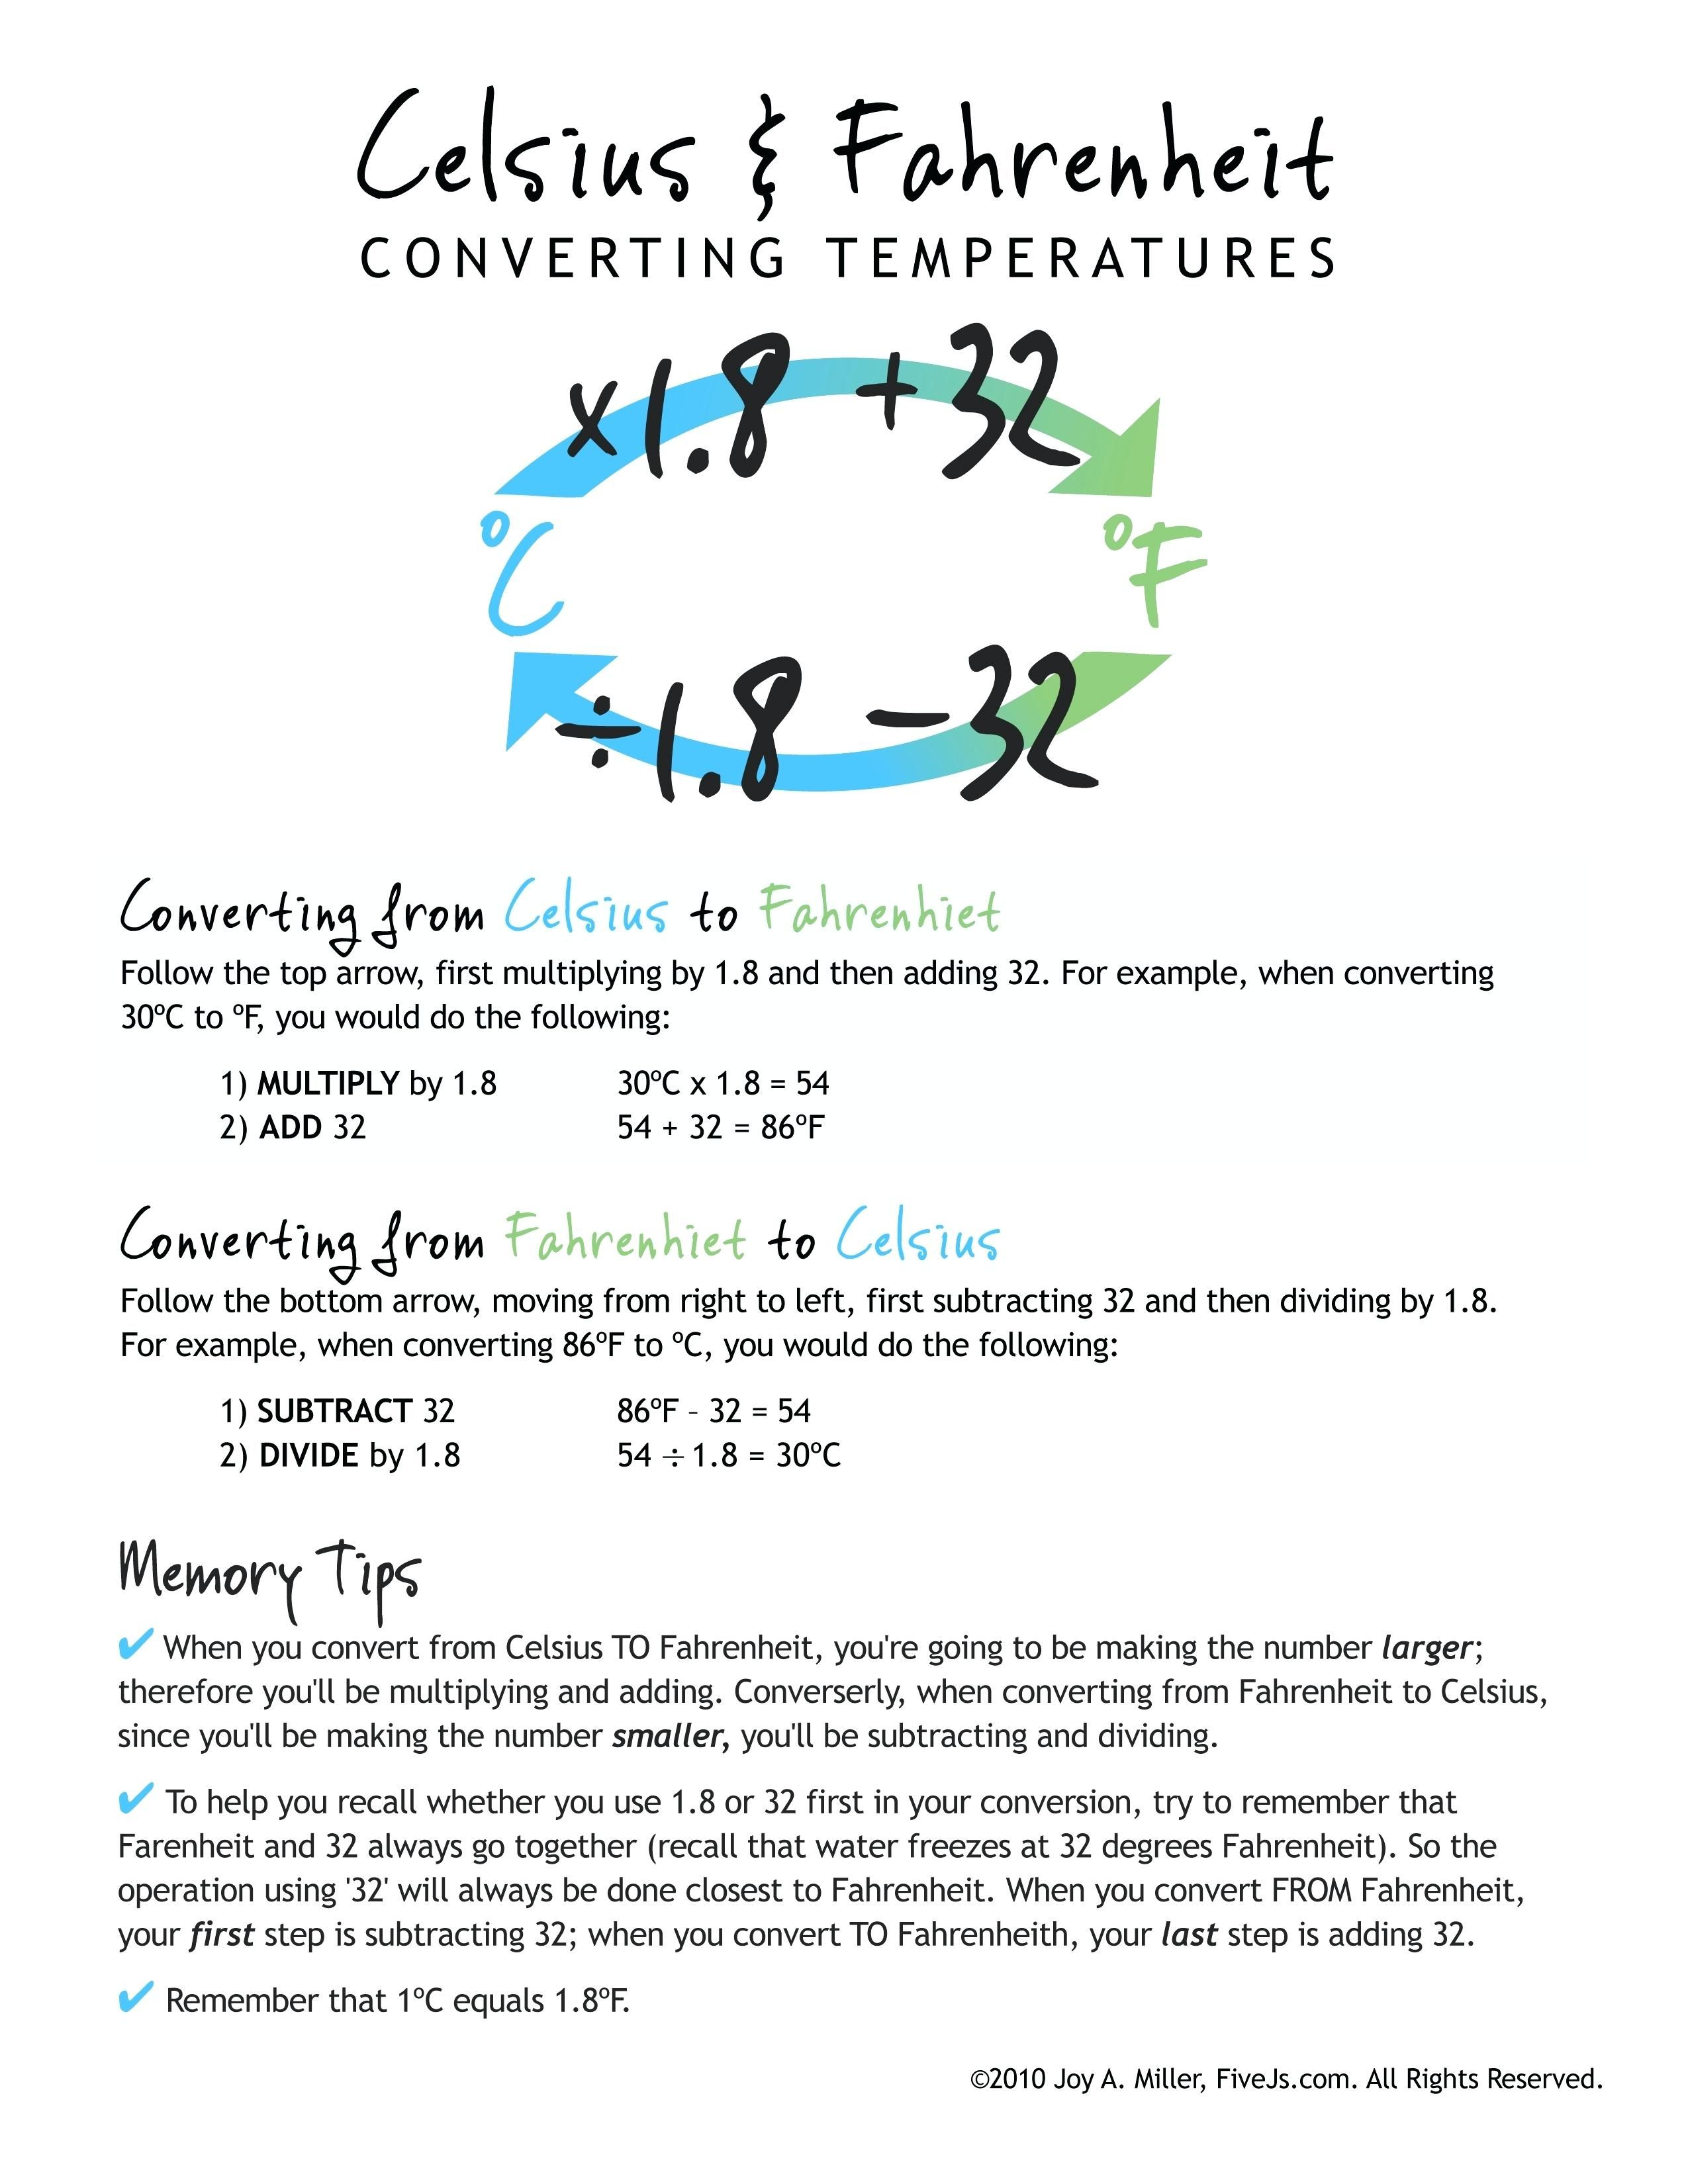 Celsius To Fahrenheit Chart Gallery Of Chart 2019 Butterfly Life Cycle Lessons Worksheet Template Life Cycles Lesson Plans